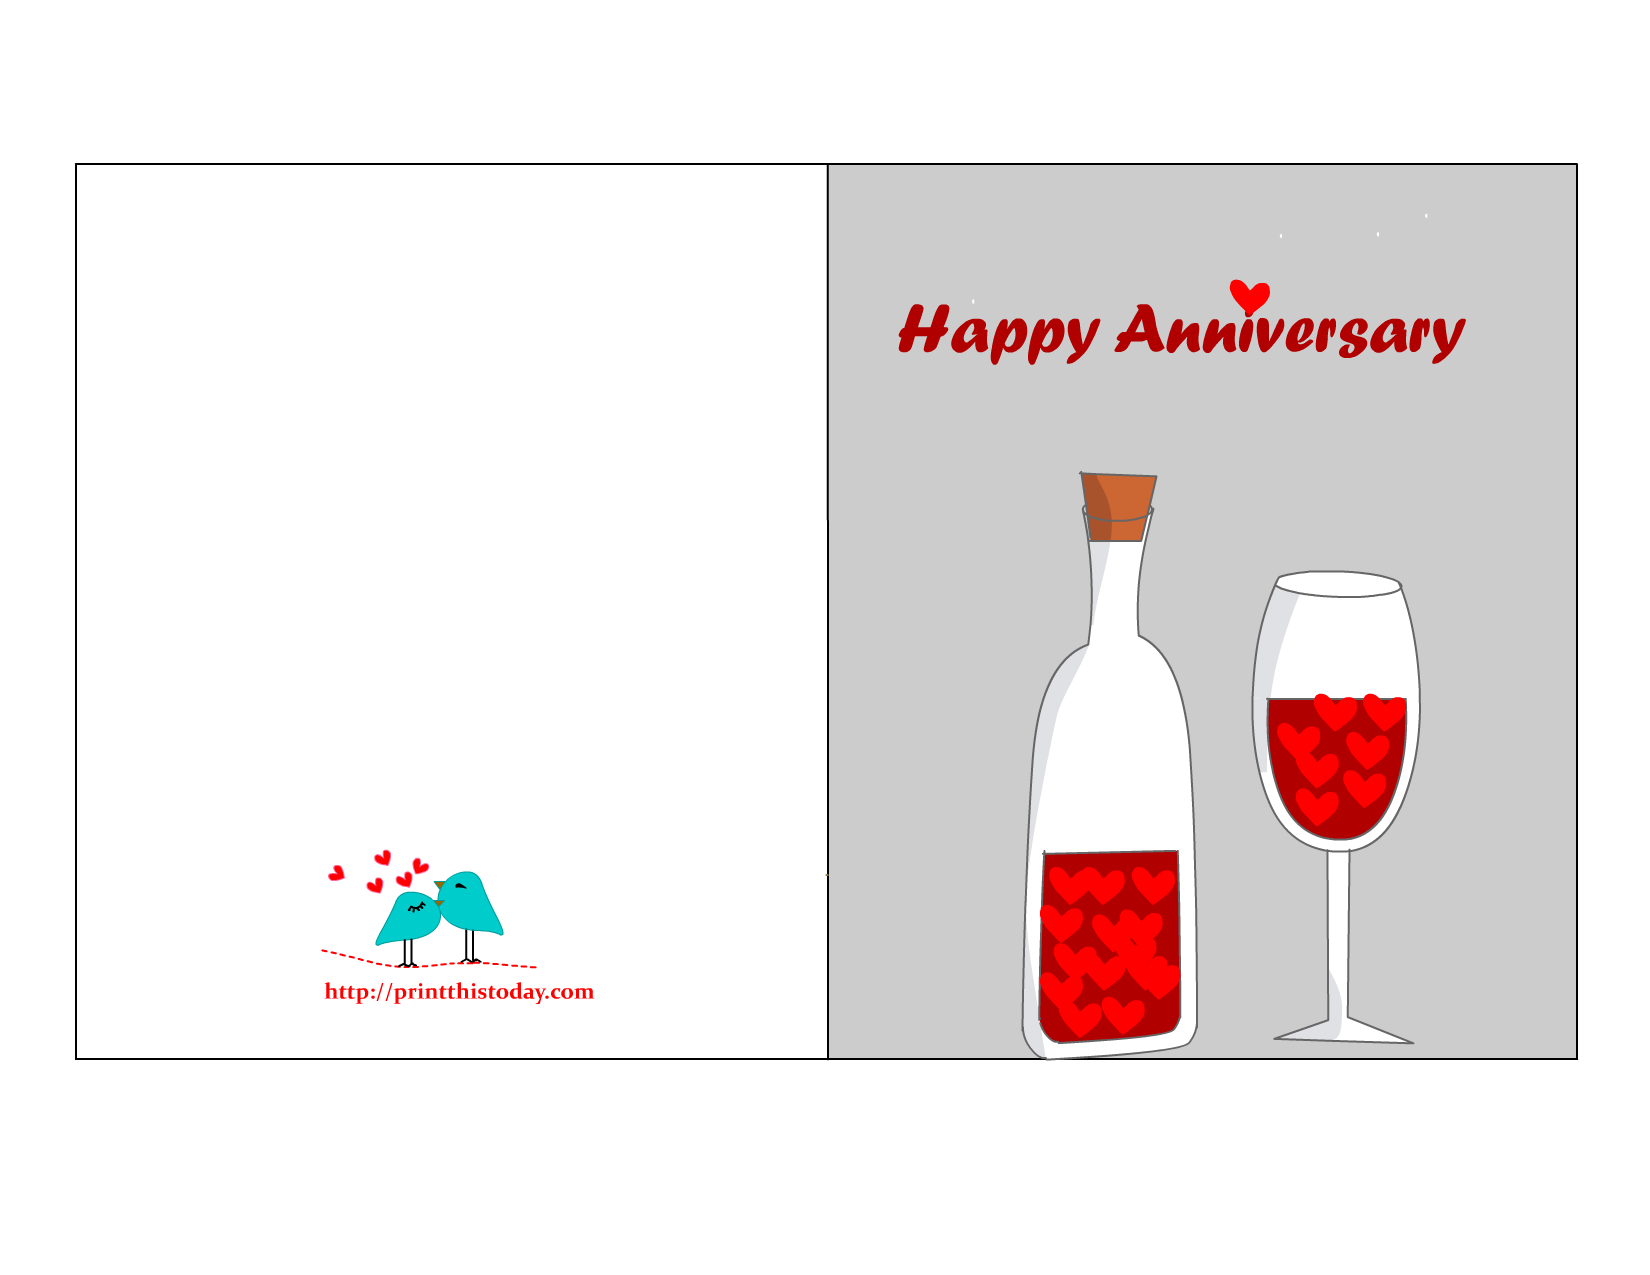 Free Printable Anniversary Cards – Free Printable Anniversary Cards for Husband